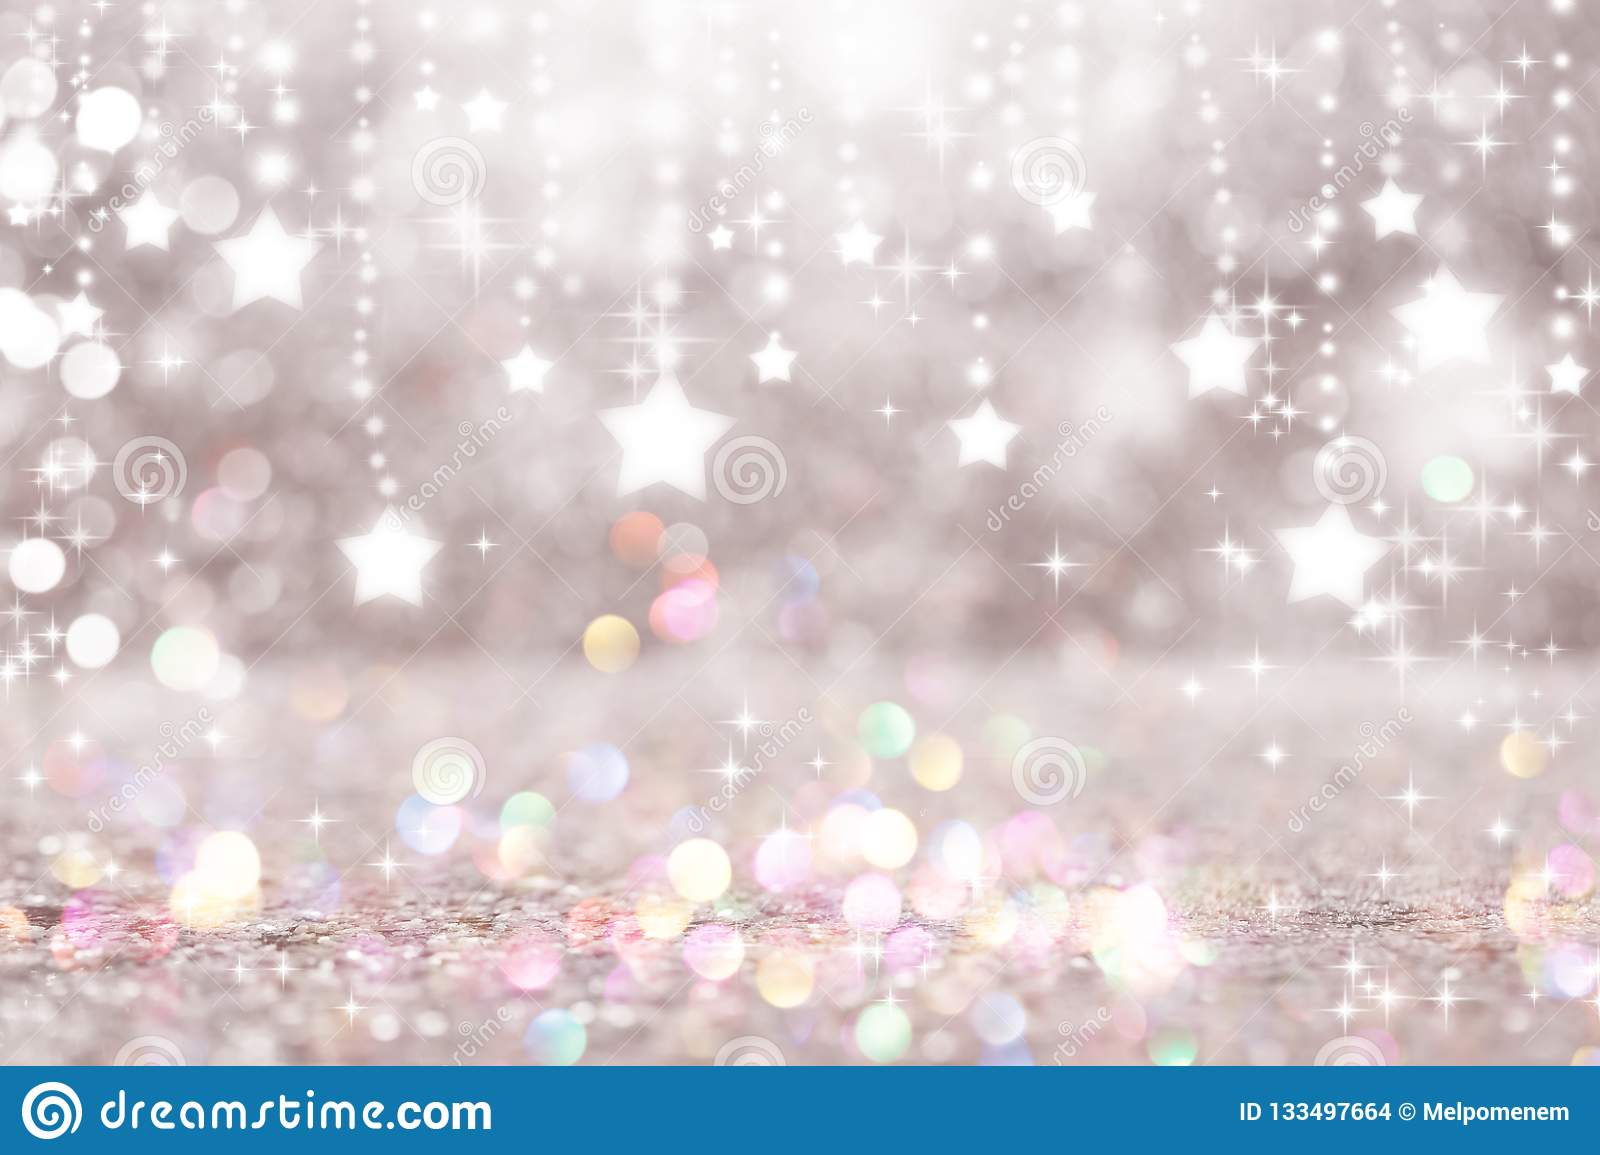 Shiny stars with abstract light background